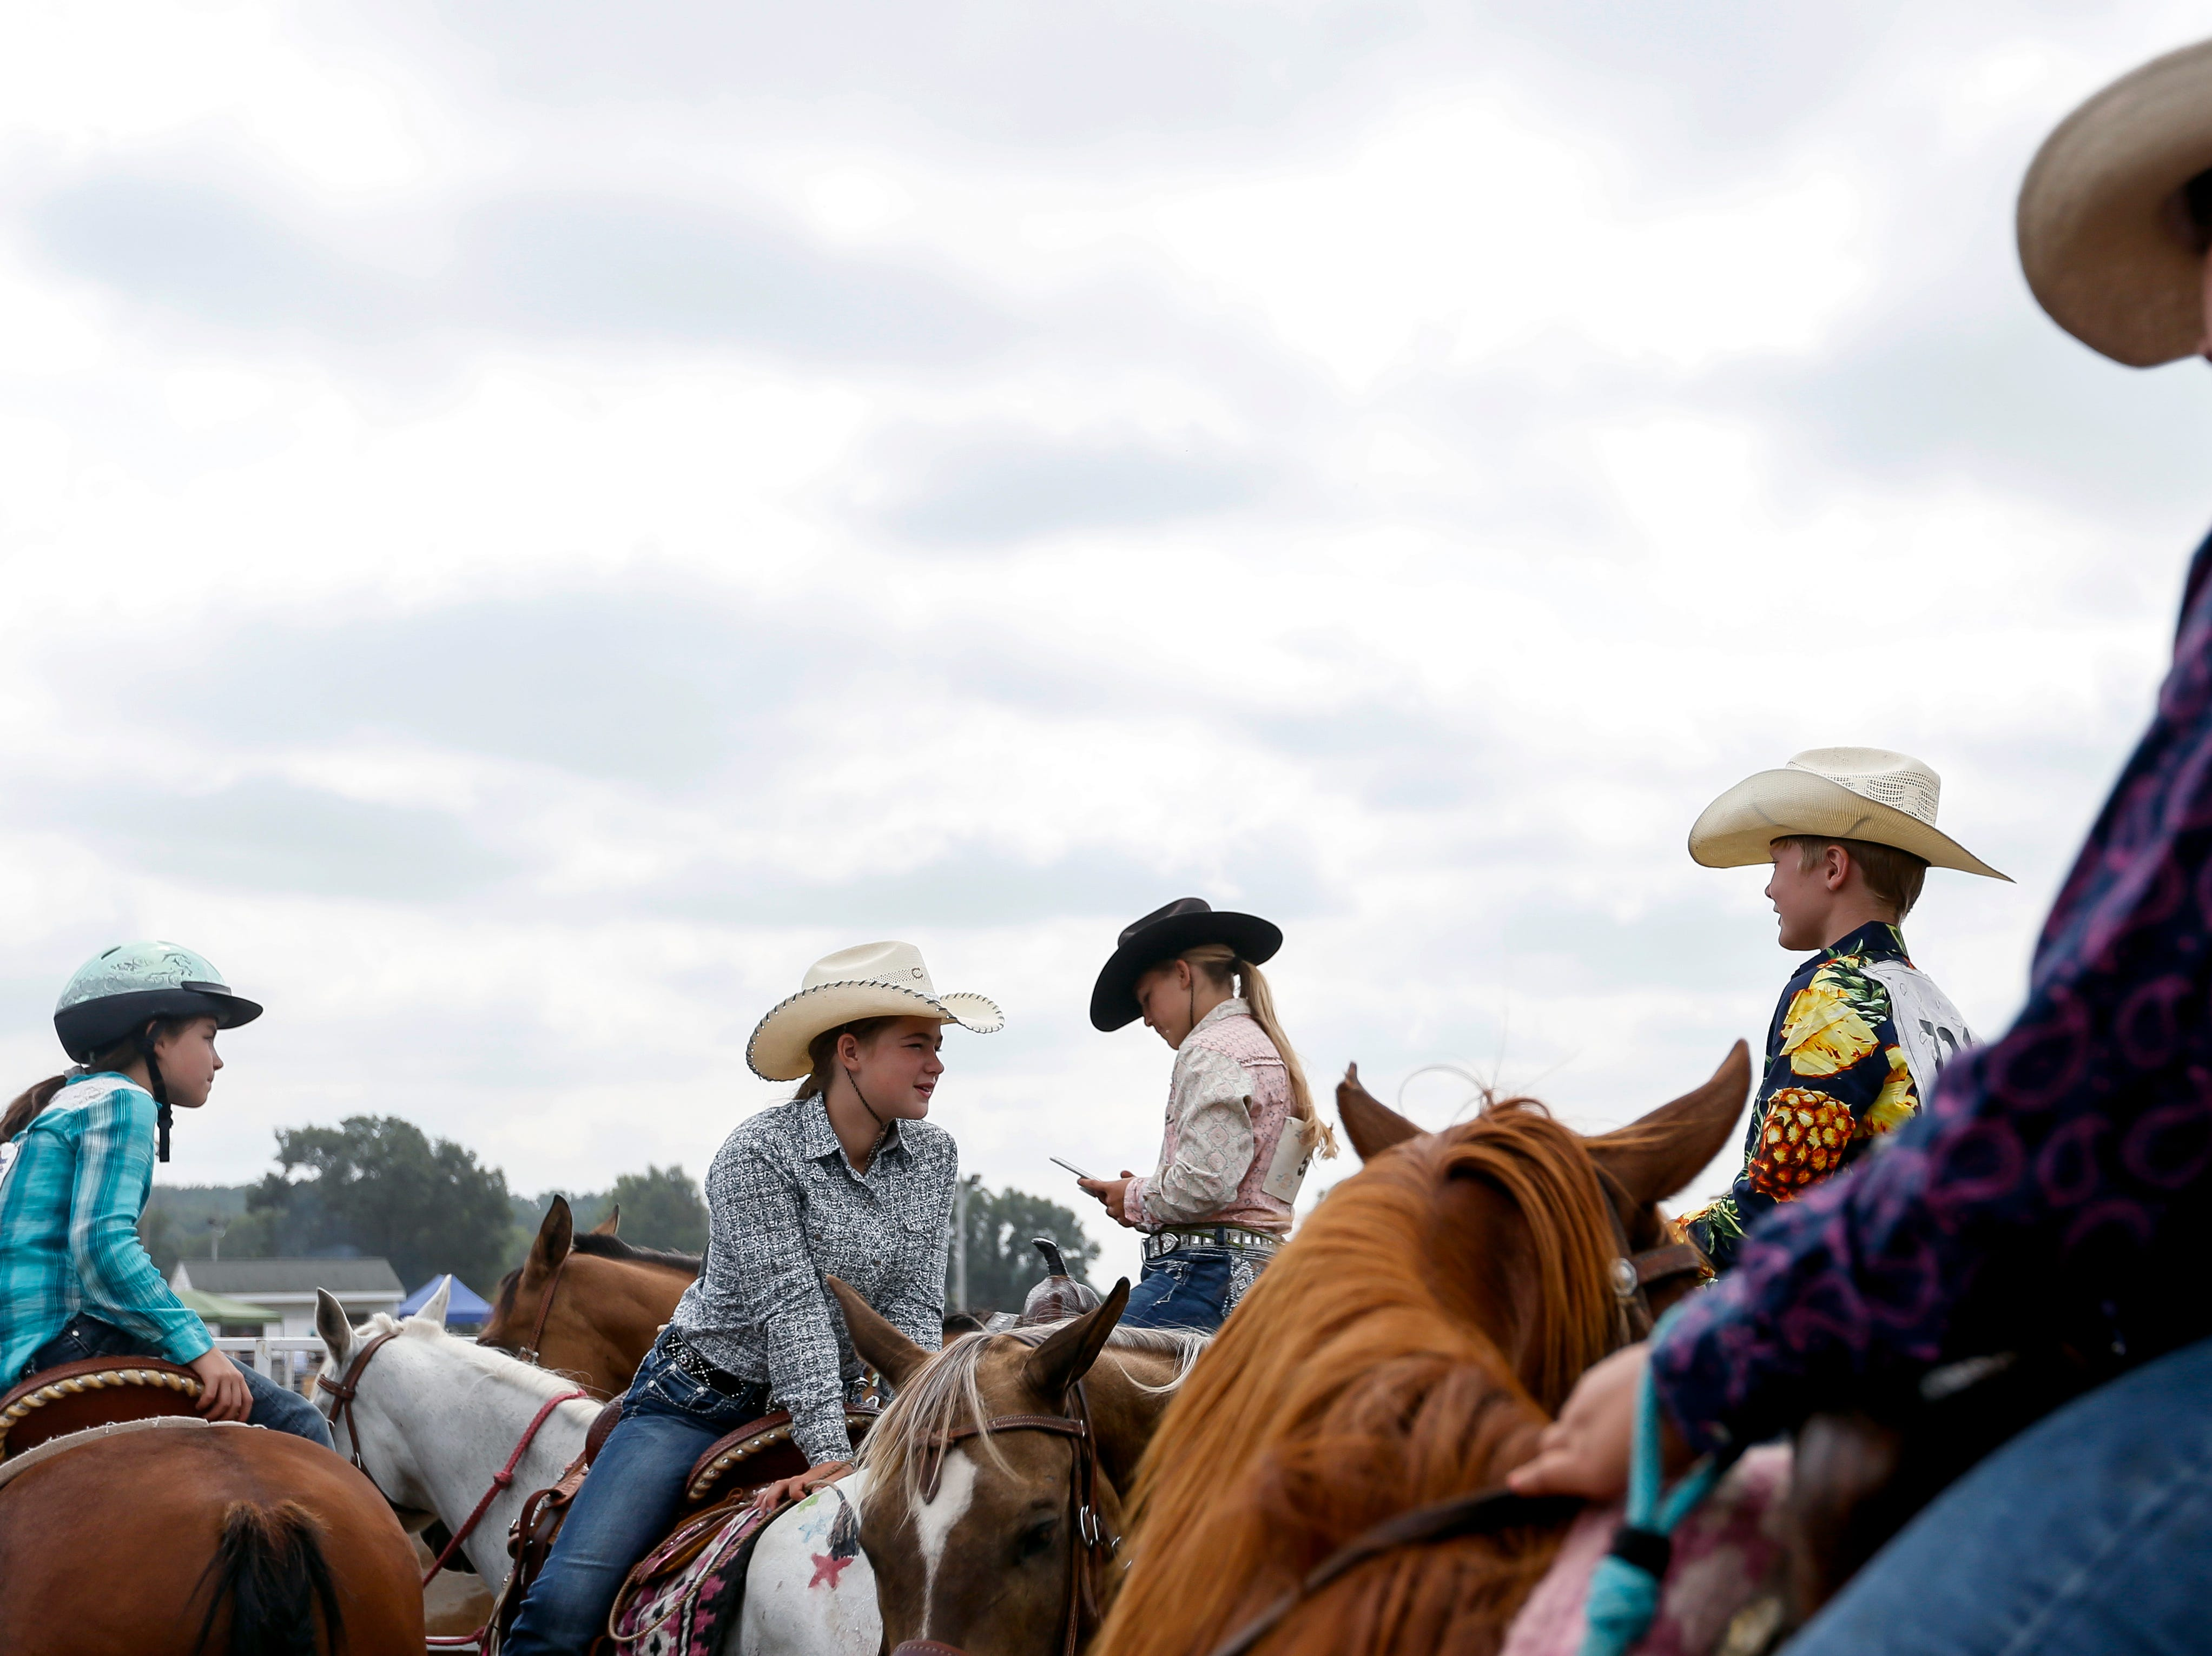 Competitors sit on their horses before competing in the Amherst Little Britches Wisconsin Rodeo in Amherst, Wis., August 17, 2018.